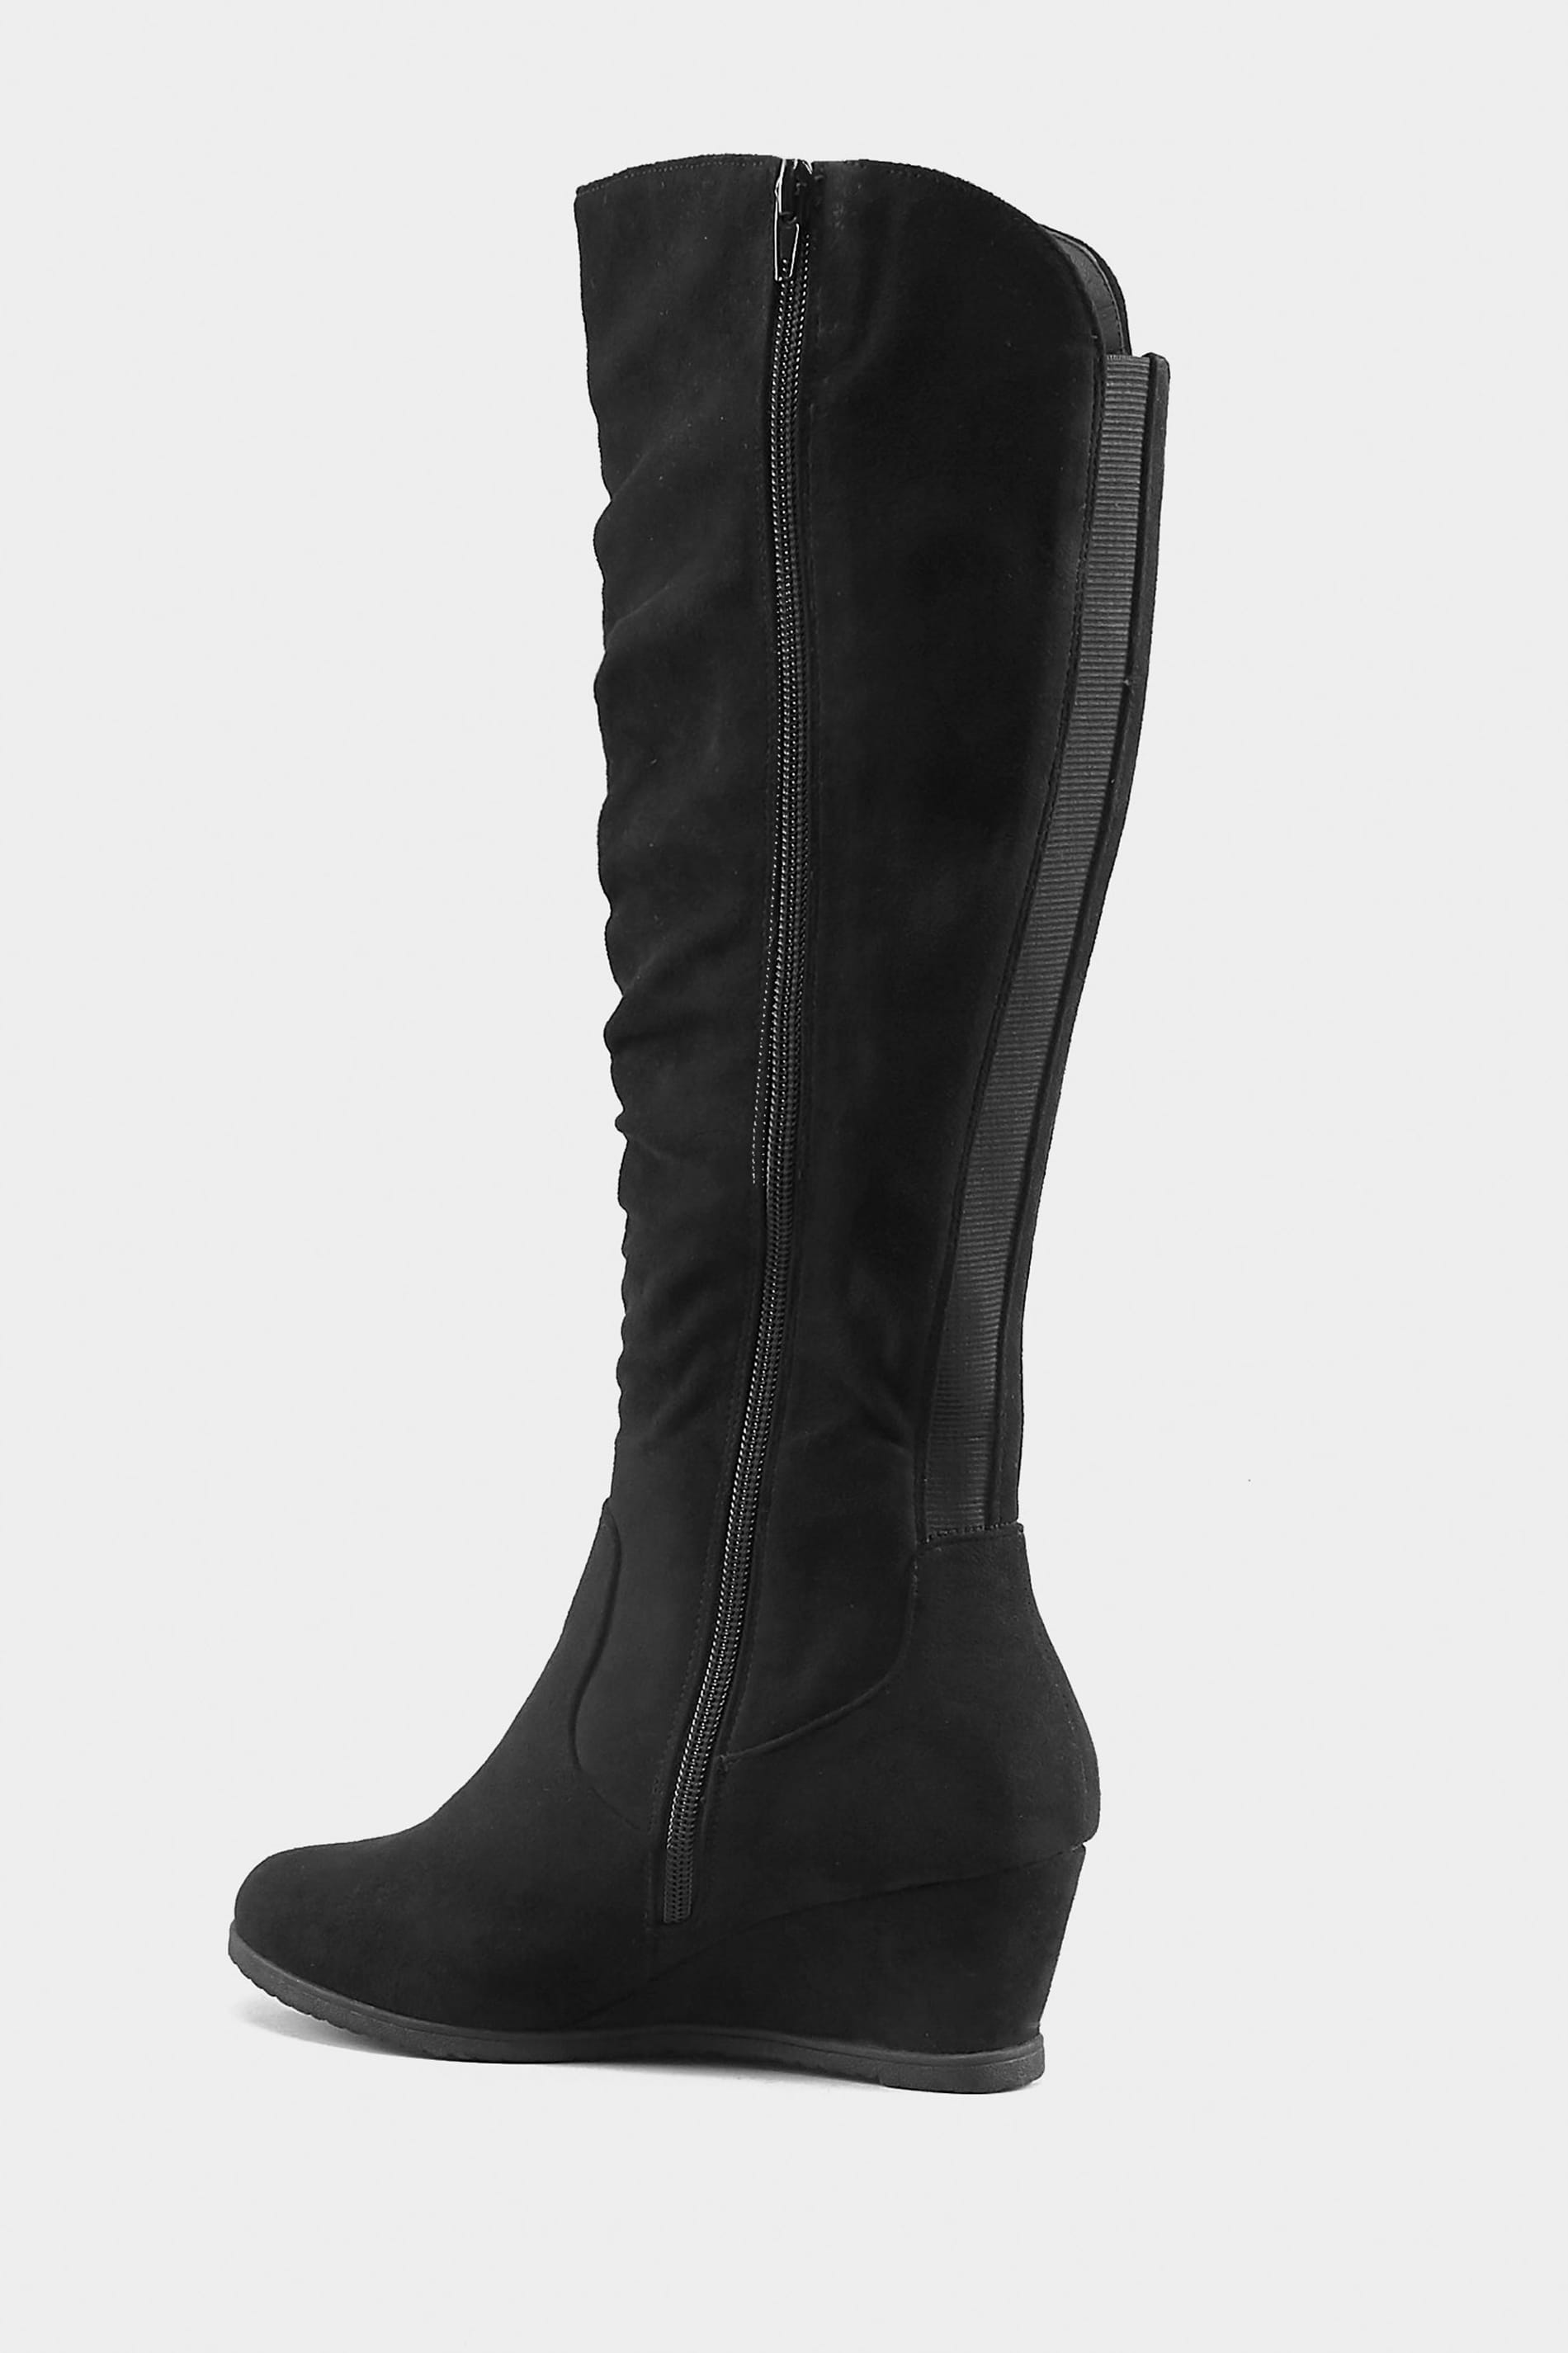 Black Ruched Knee High Wedge Boot In EEE Fit, Wide Fit ...